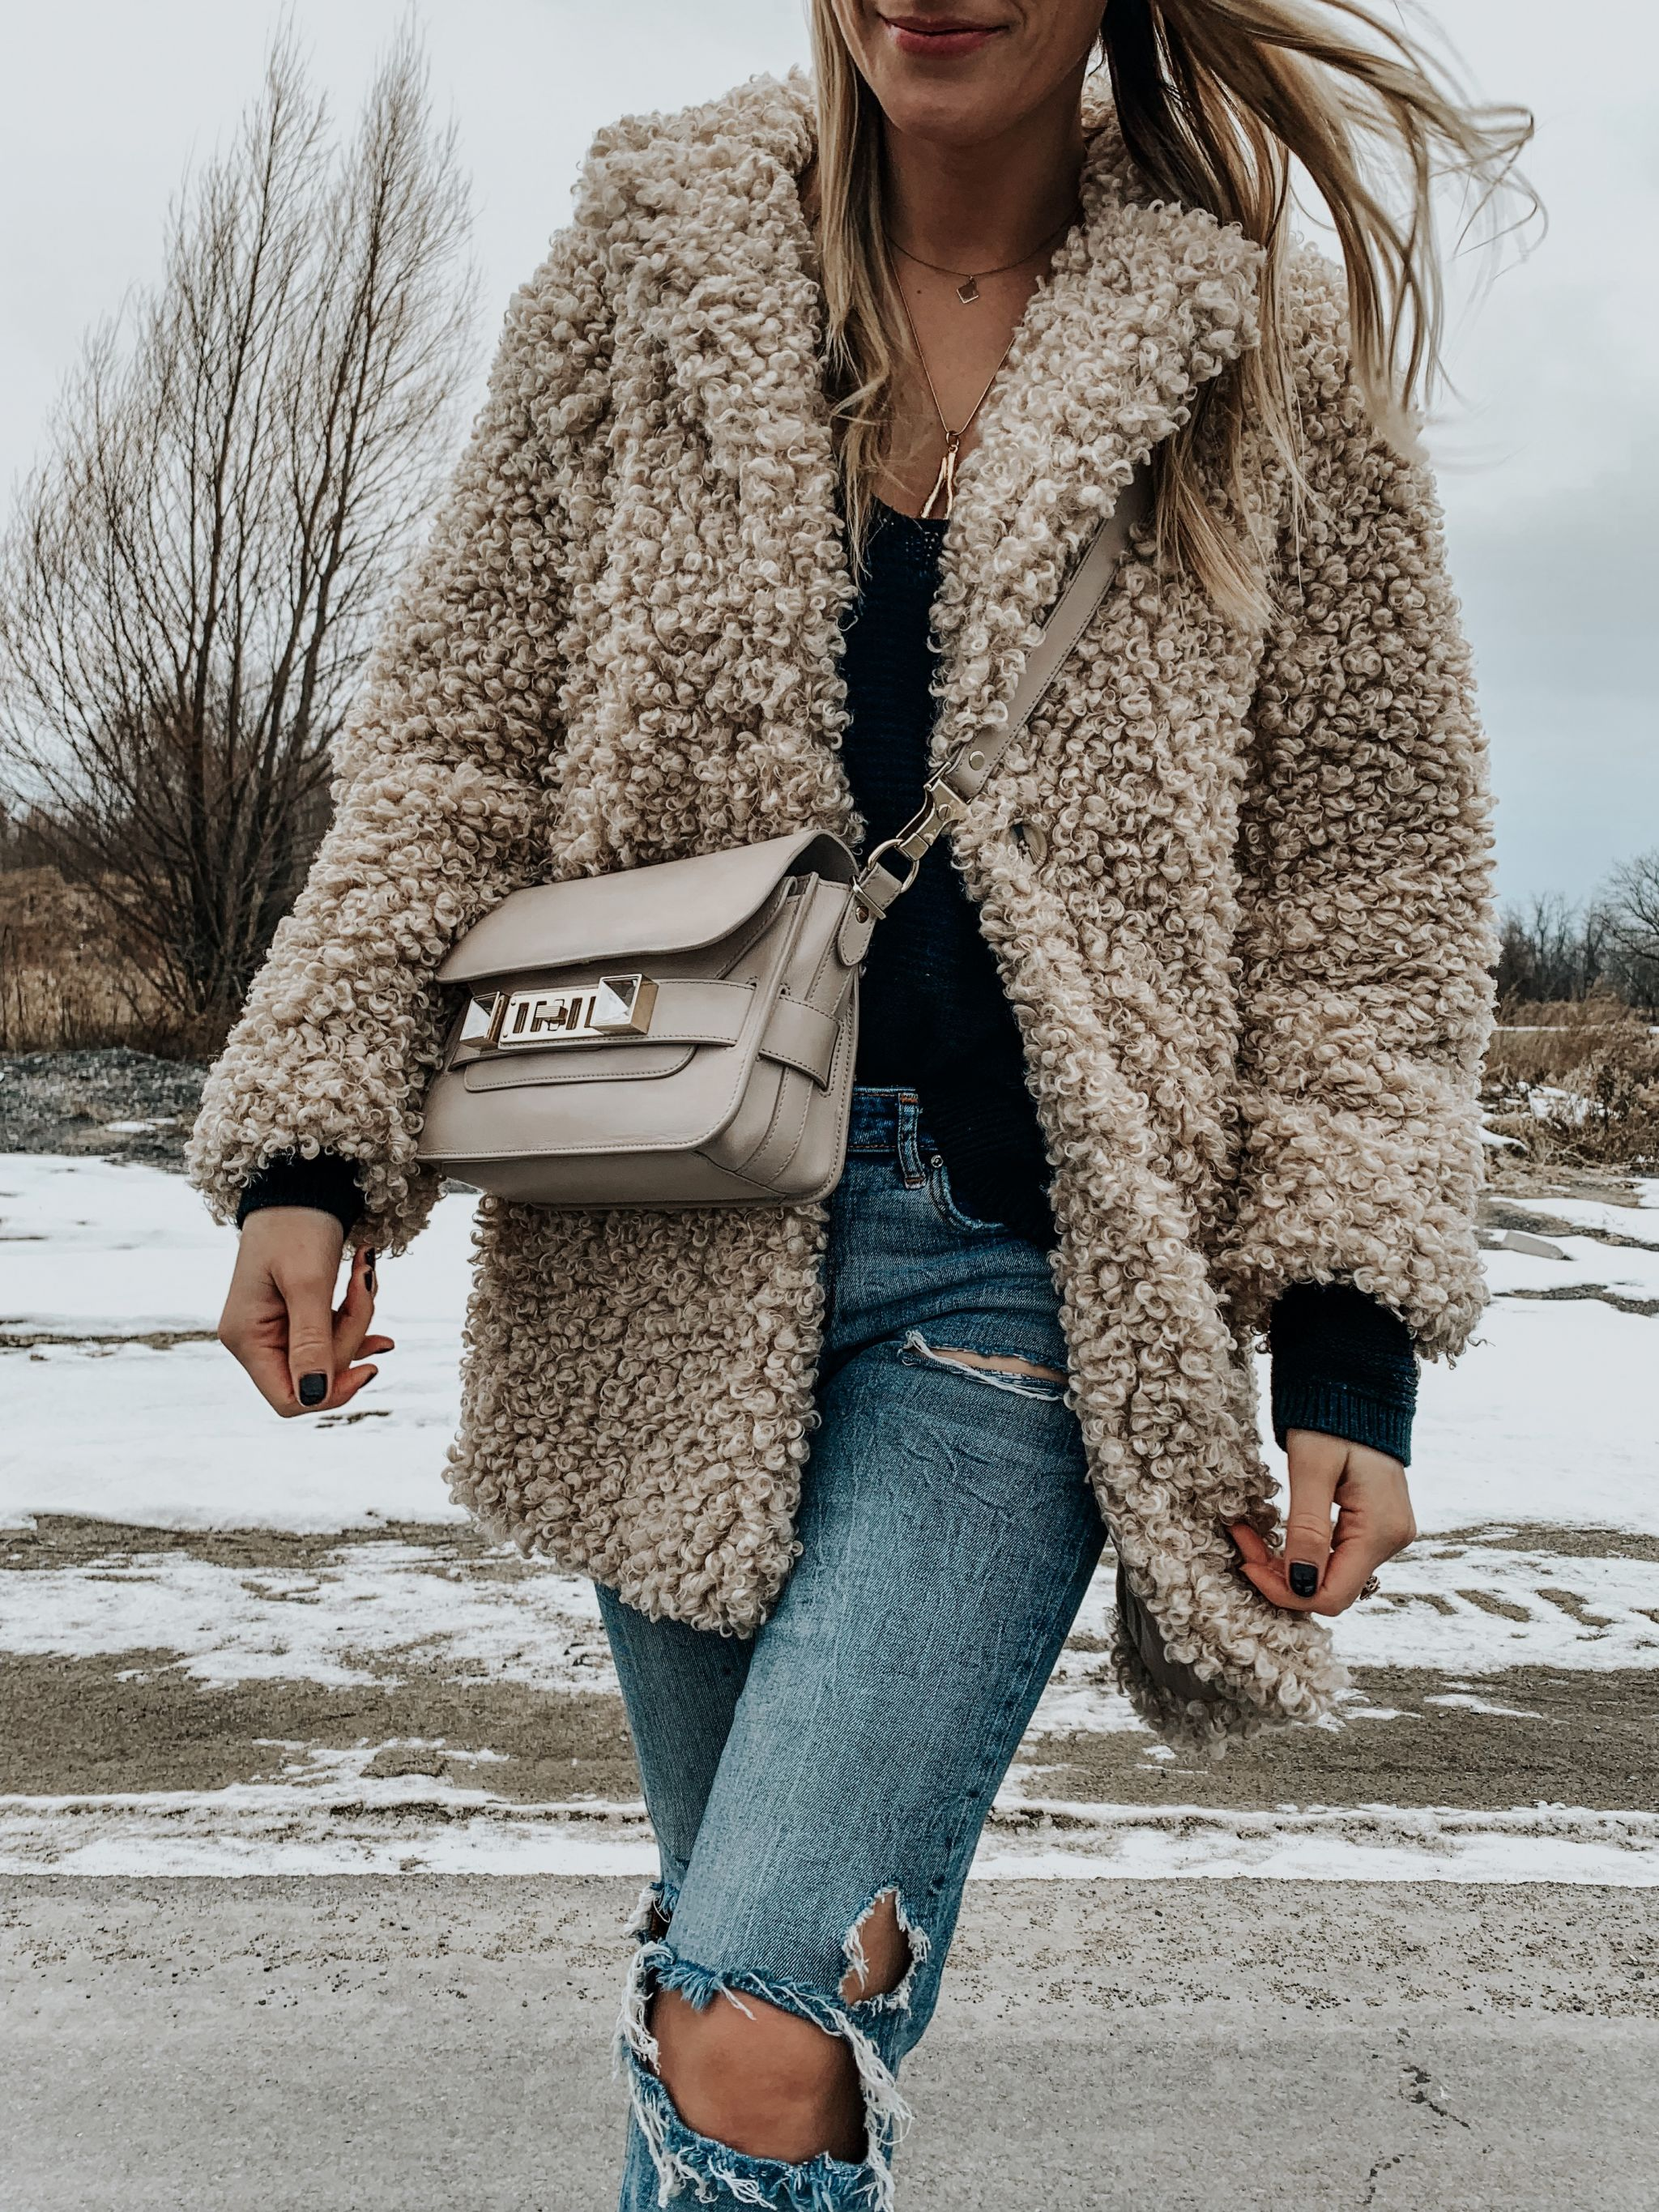 1 person, girl wearing teddy coat outfit